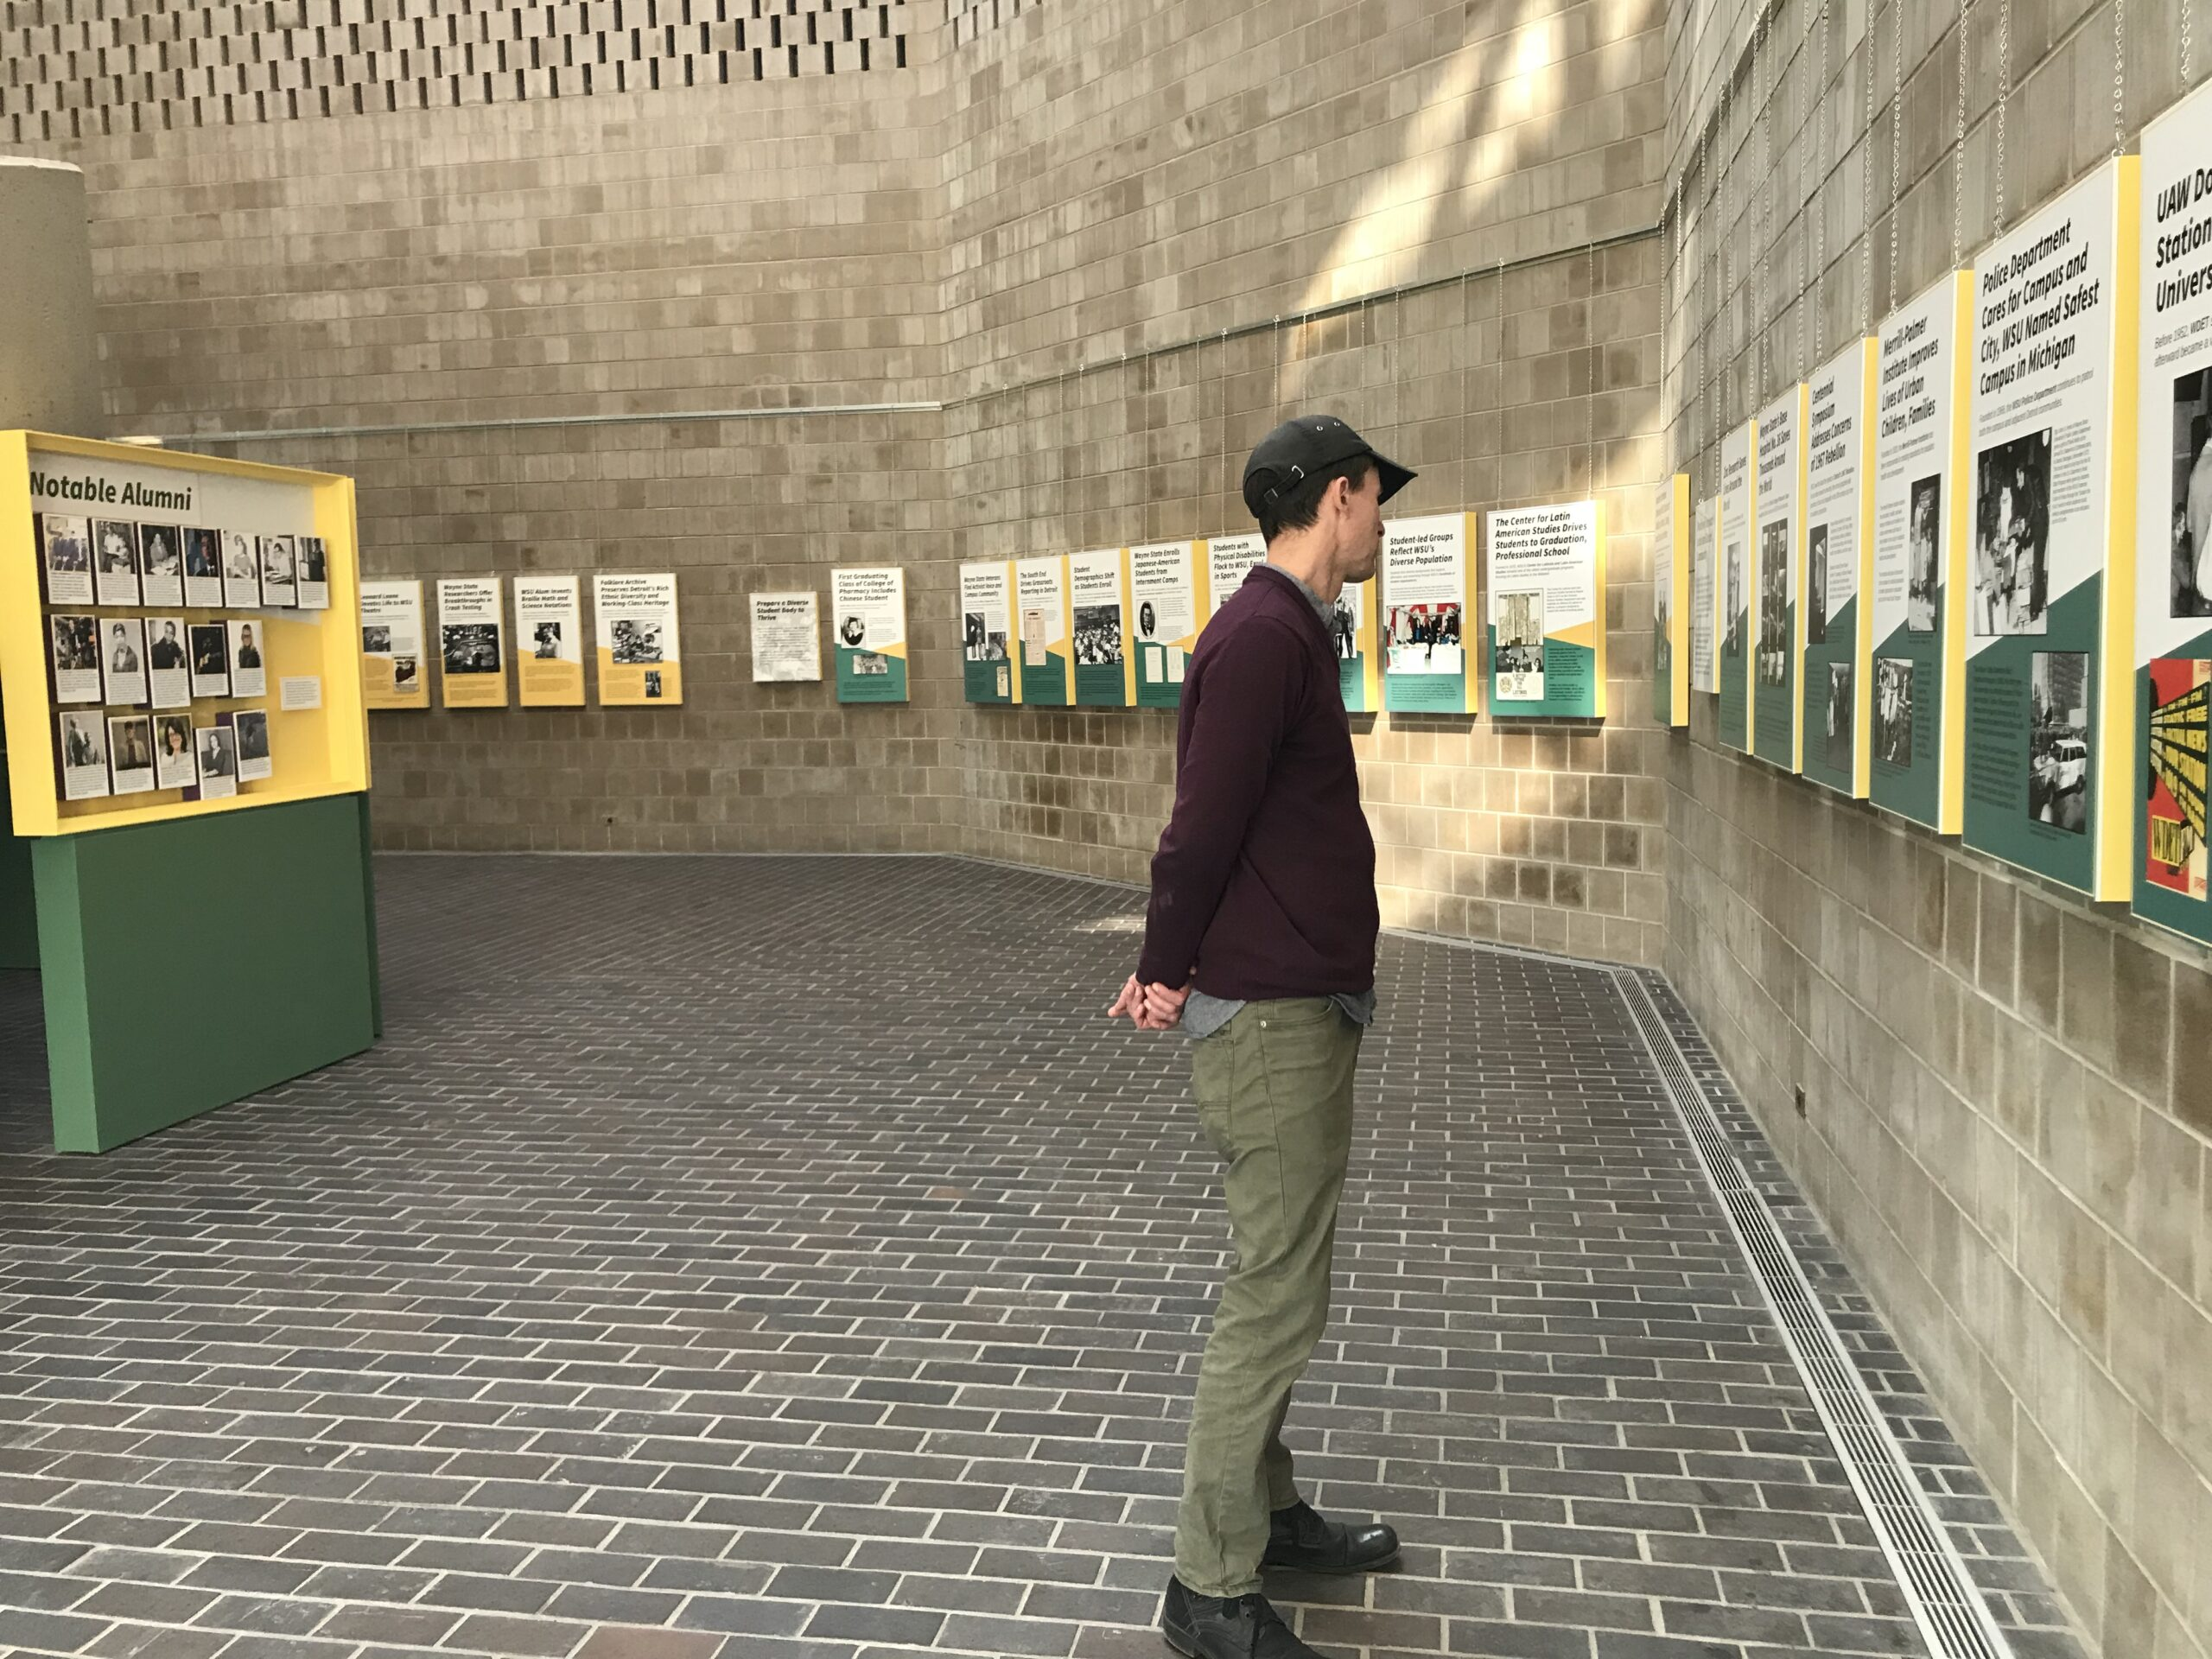 A visitor learns about Wayne State's history through a timeline of text, images and graphics.